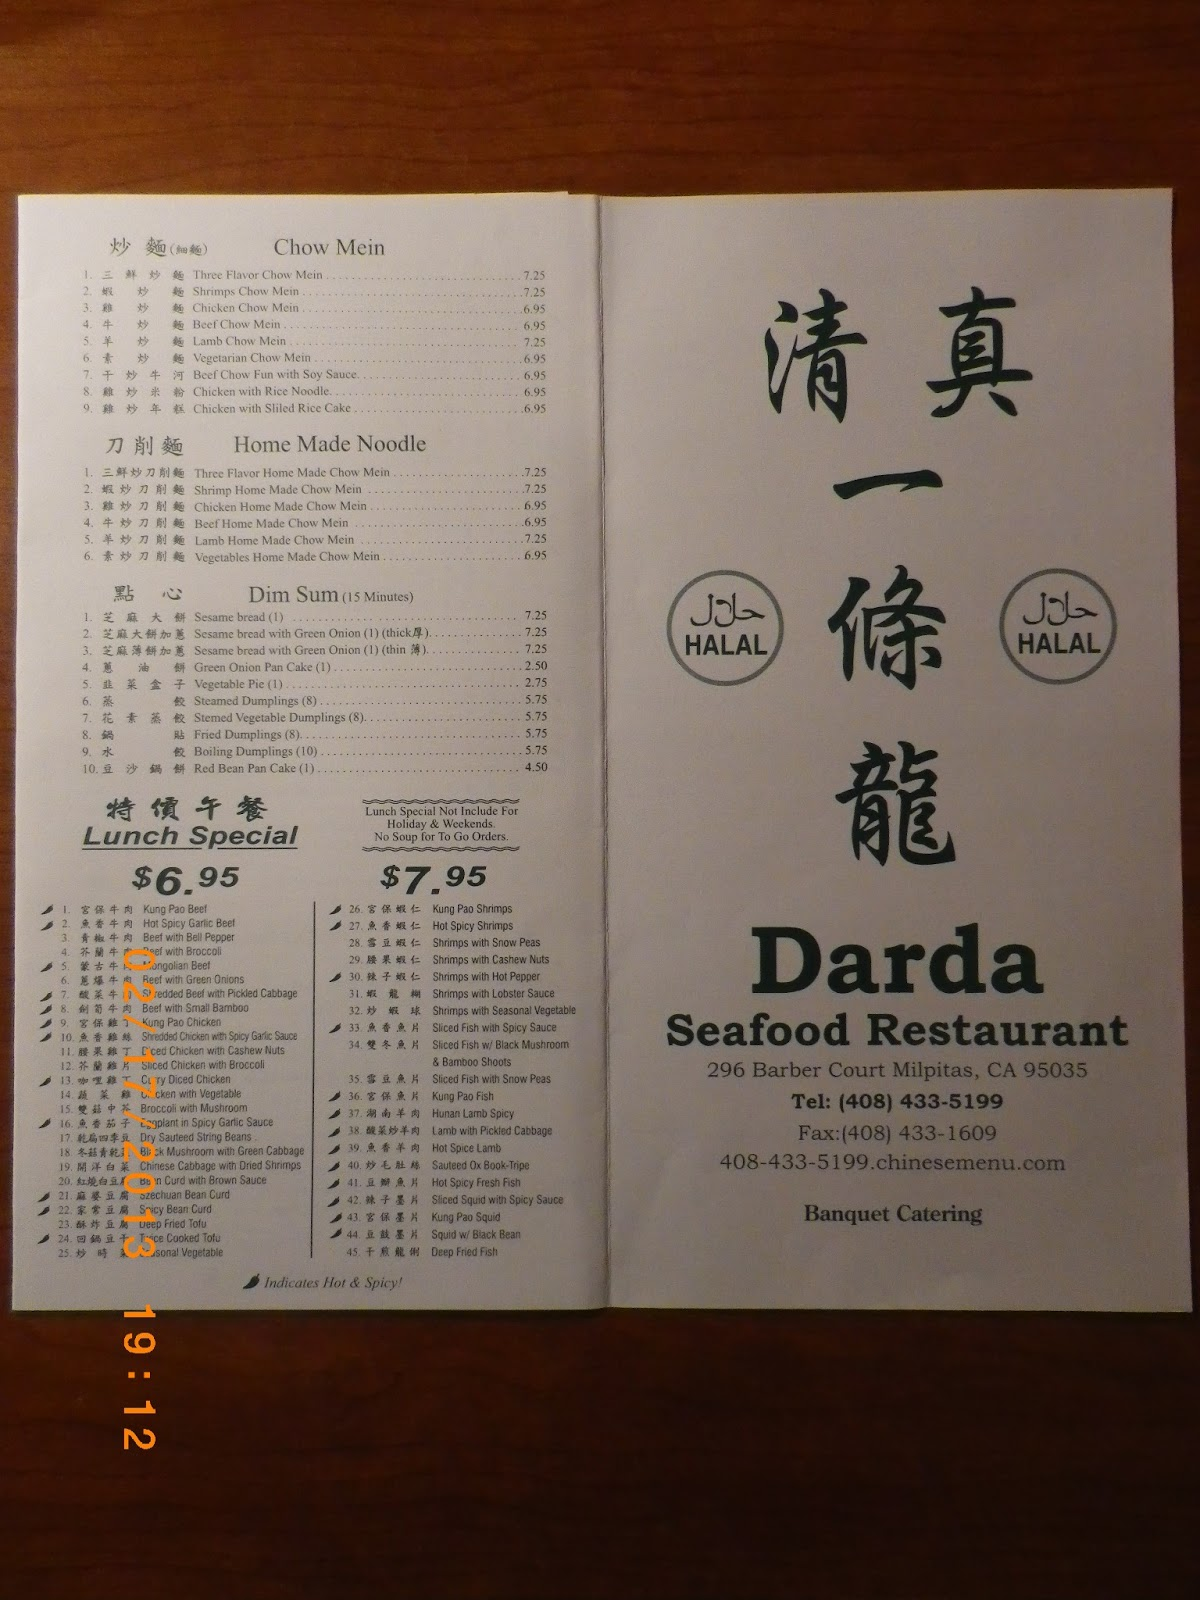 Darda Restaurant Menu